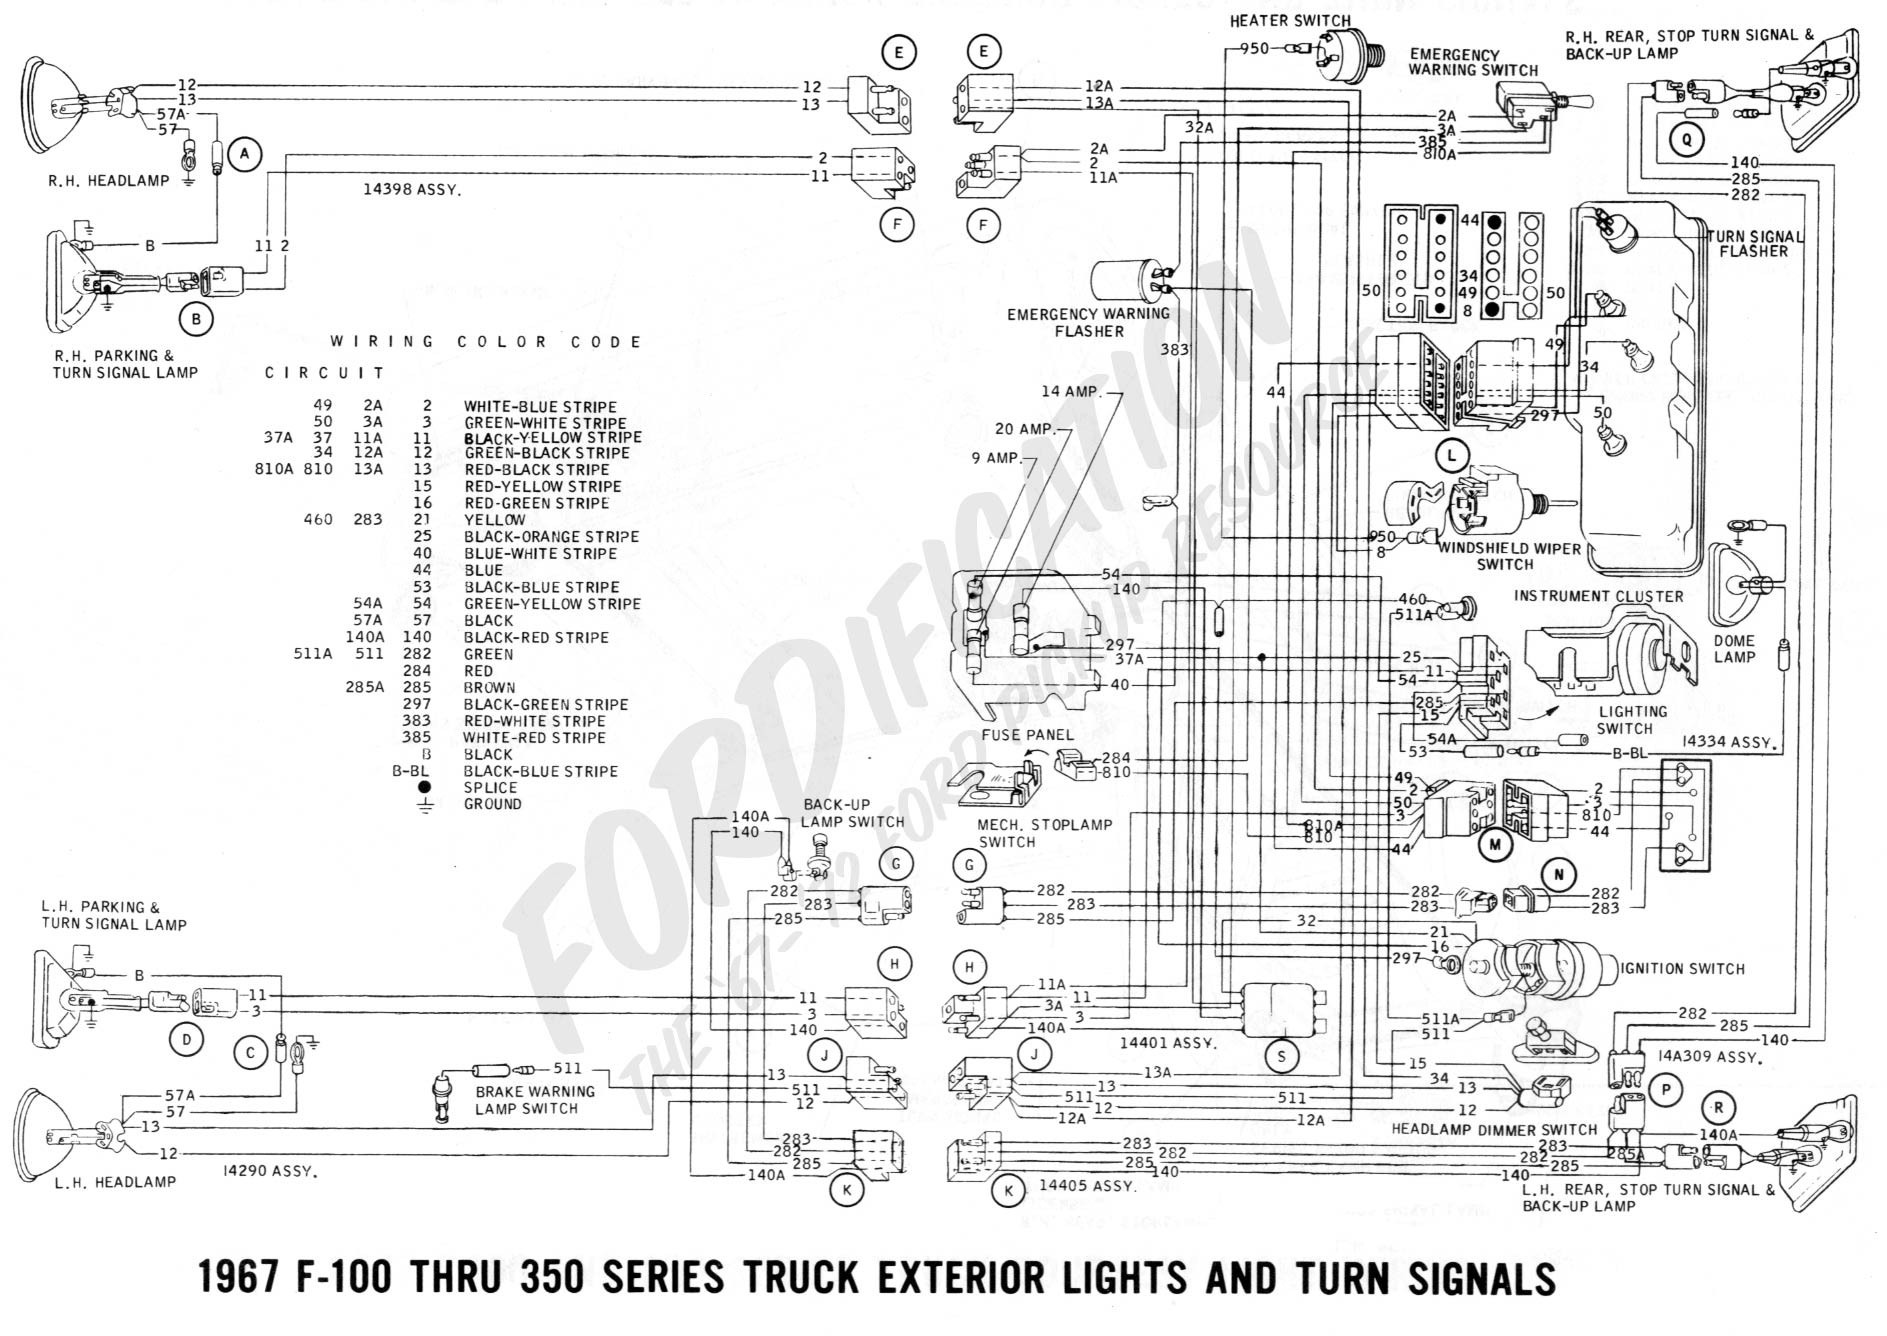 1968 Ford Torino Ignition Wiring Diagram • Wiring Diagram